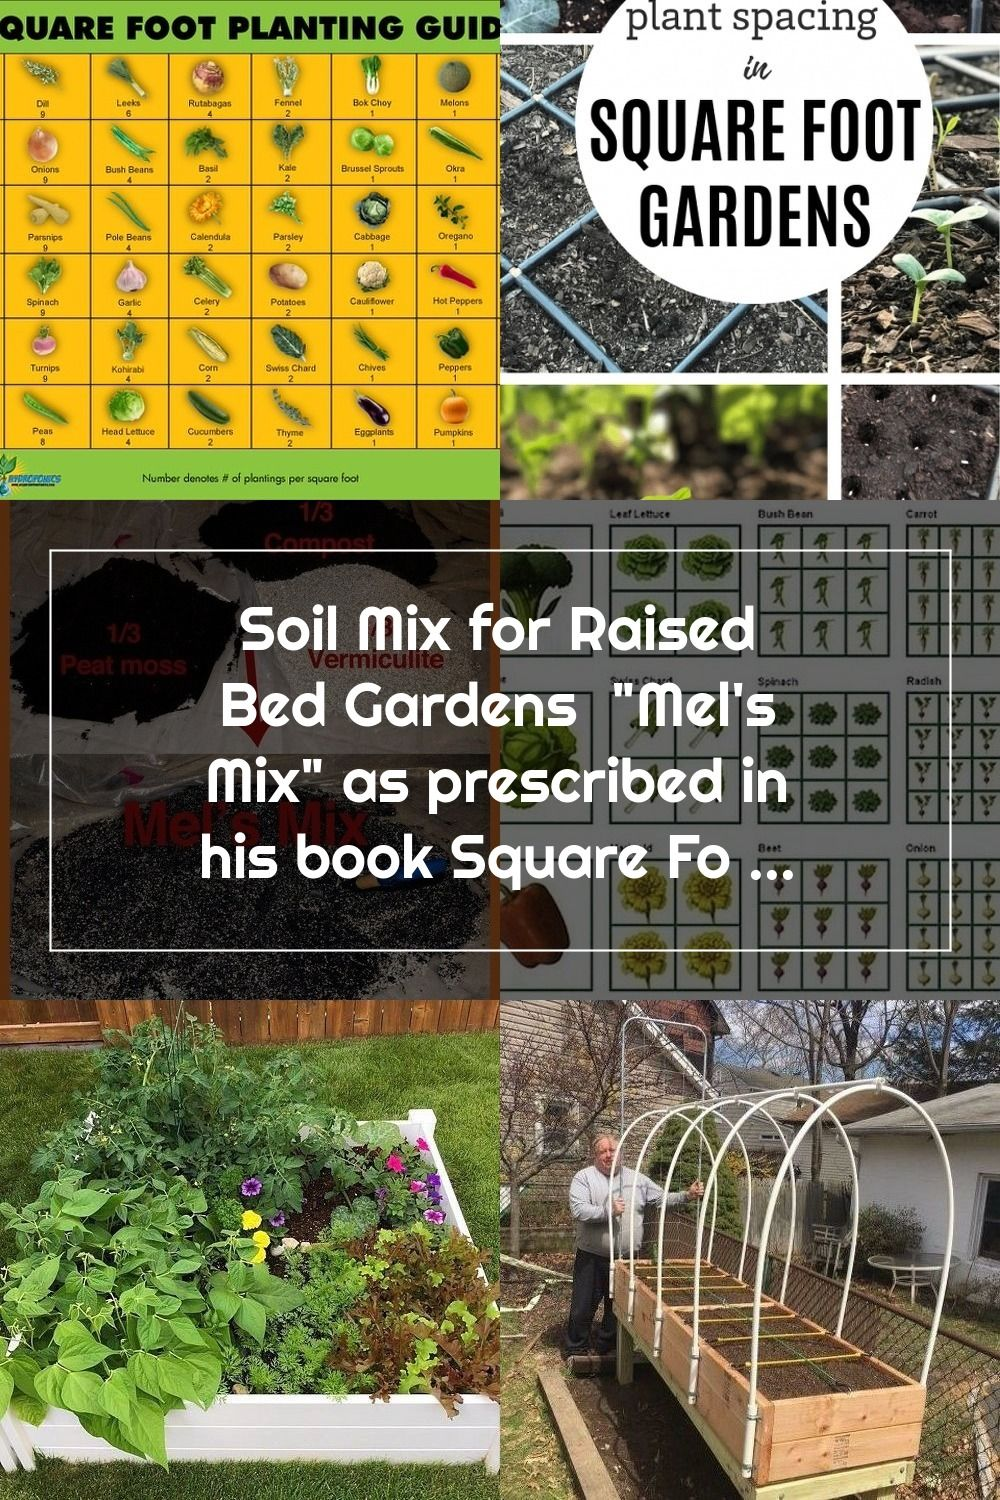 ca6014a3e2e768943e5c9cf9a45b281e - Garden Time's Square Foot Gardening Potting Soil